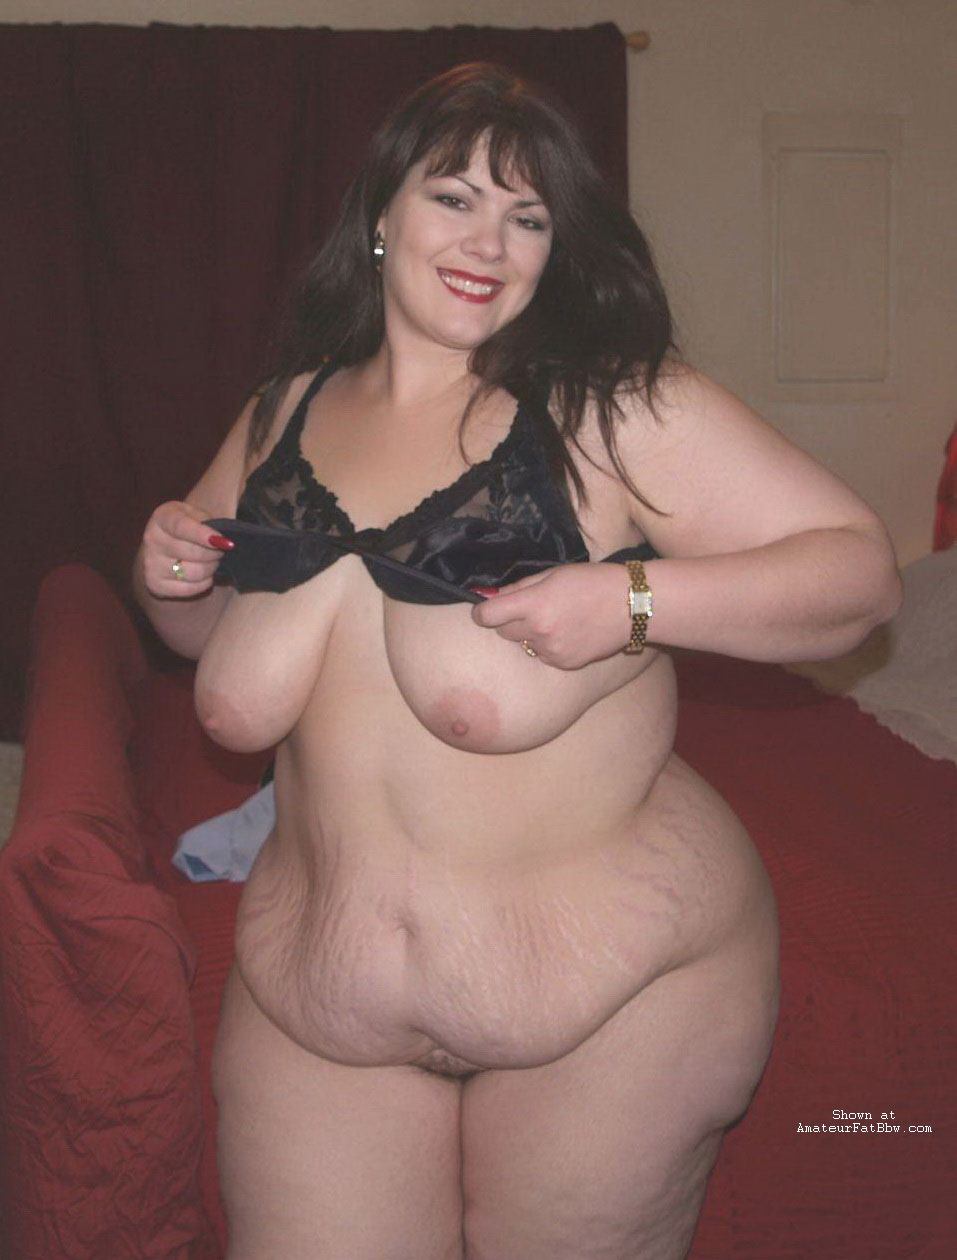 Bbw for bbc tumblr